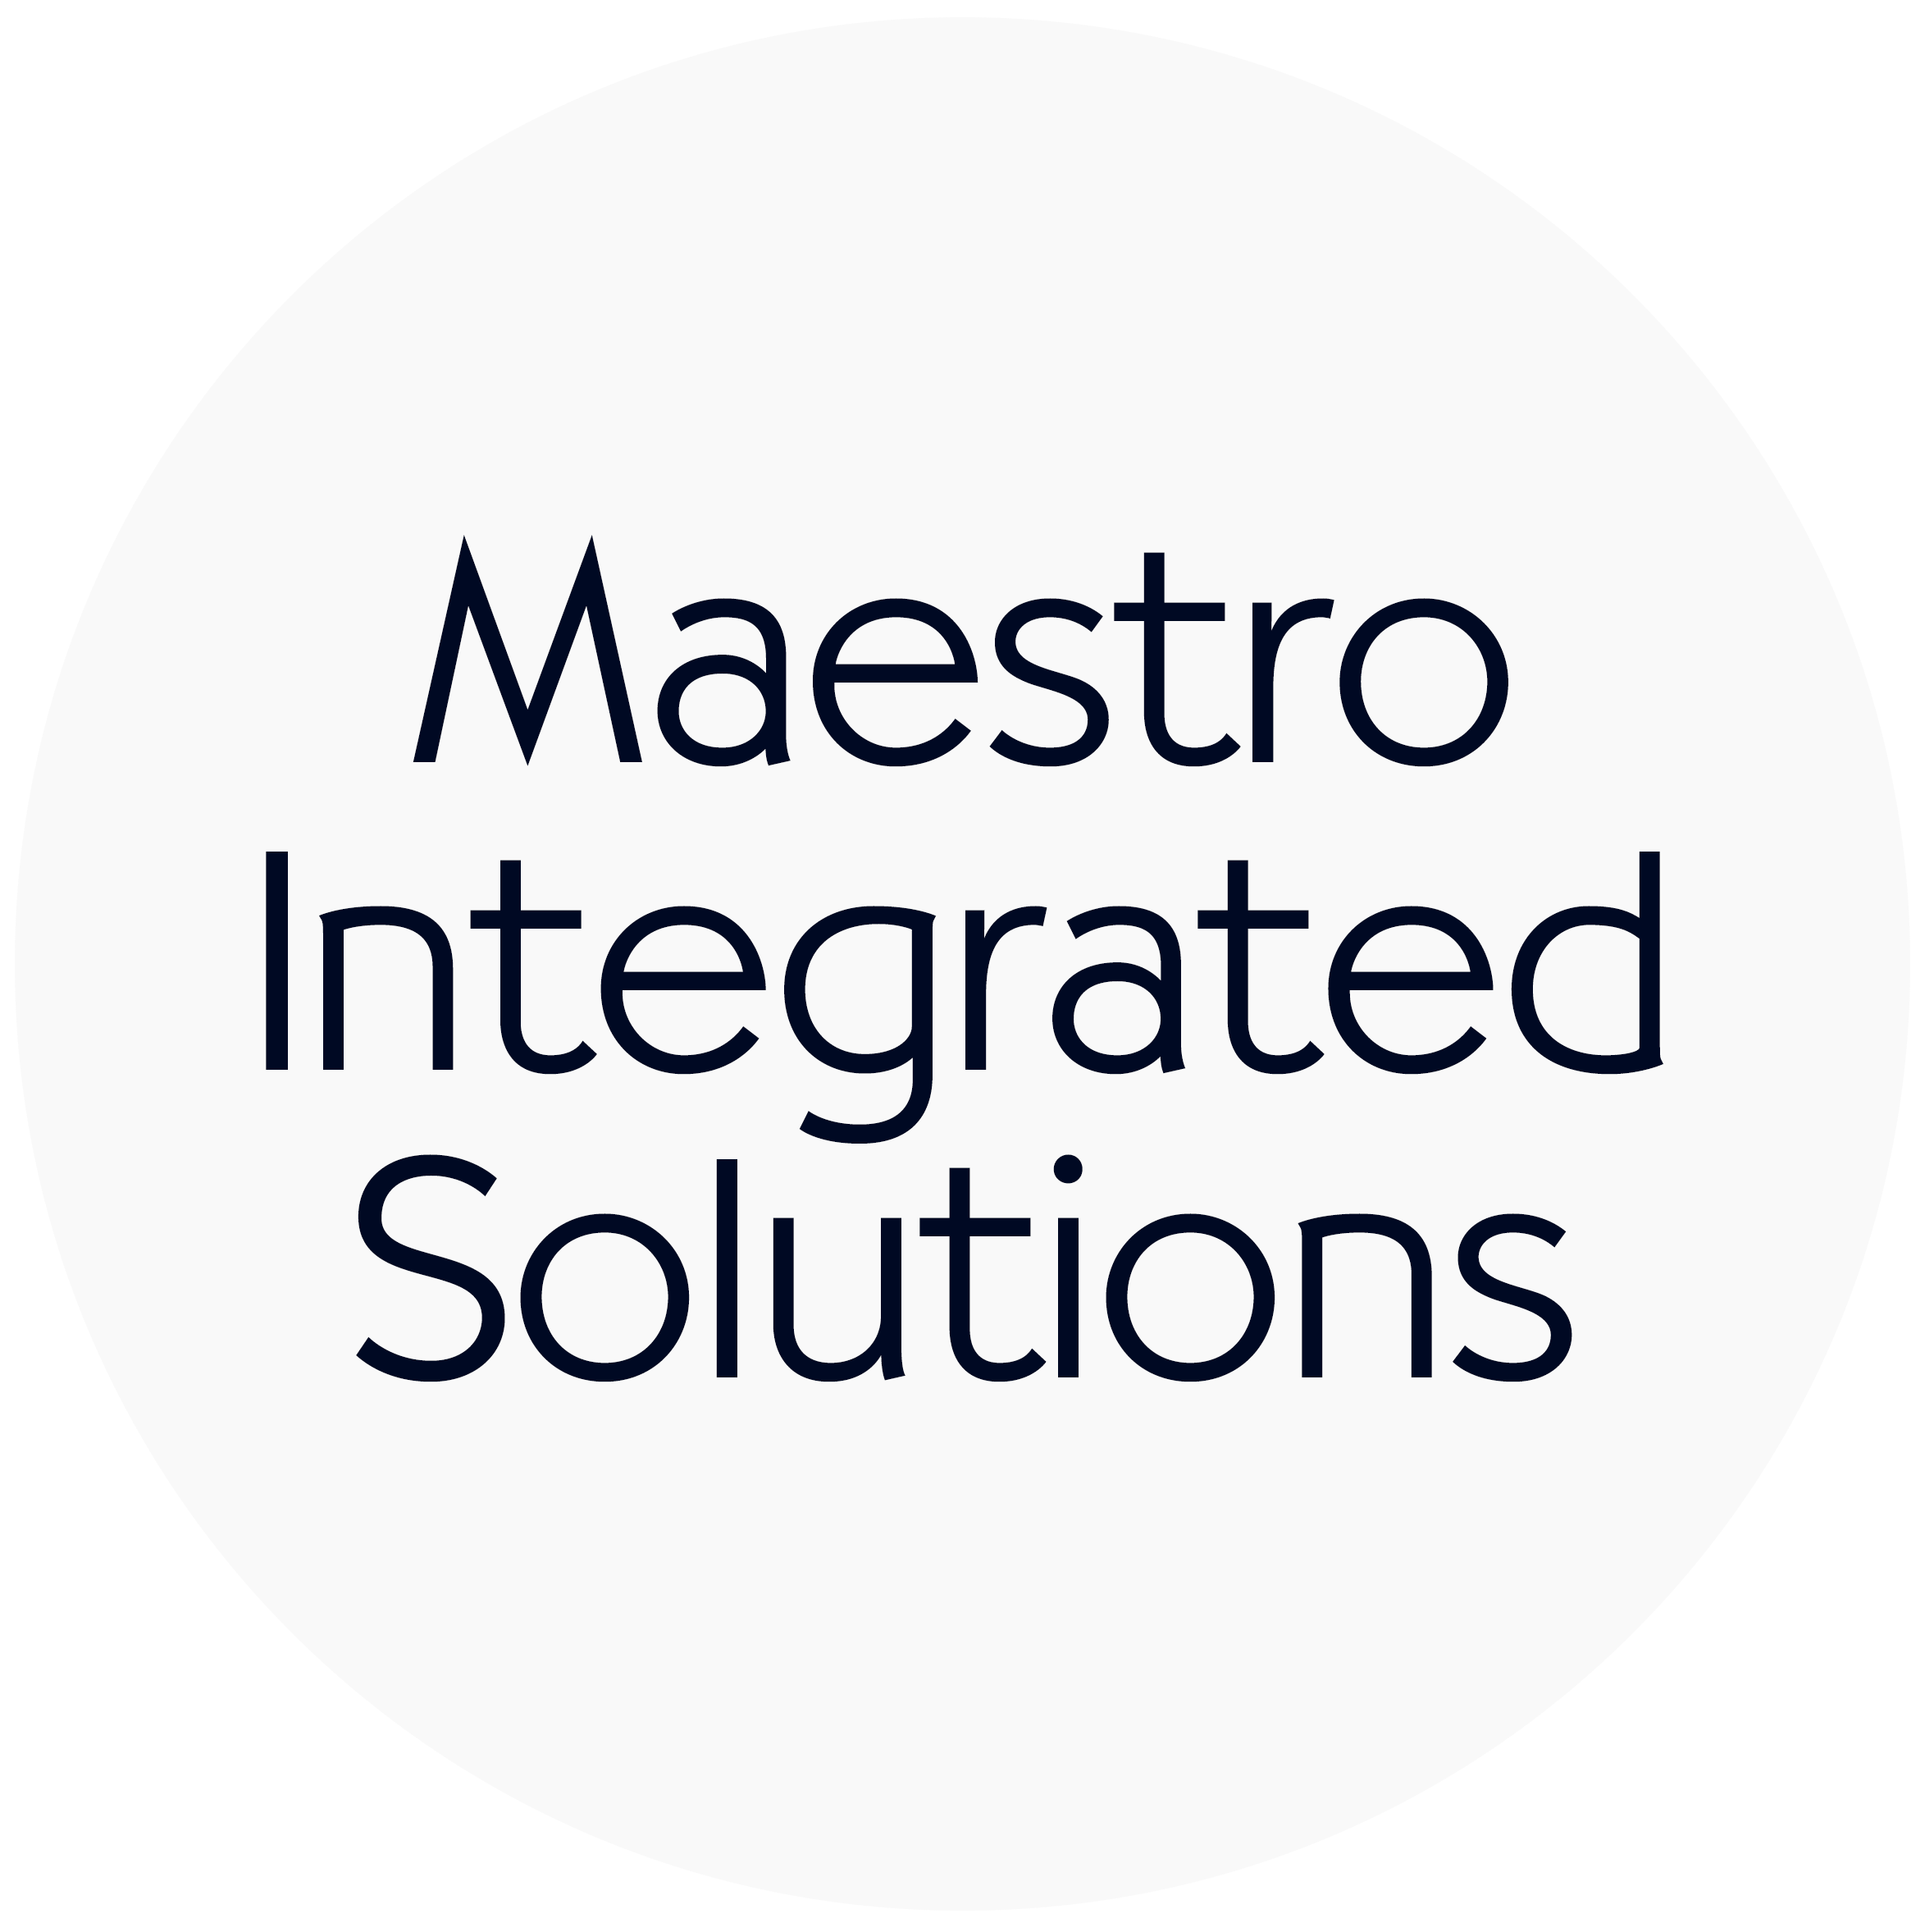 maestrointegratedsolutions - Home - Innovative Property Management Software Solutions Powering Hotels, Resorts & Multi‑Property Groups.